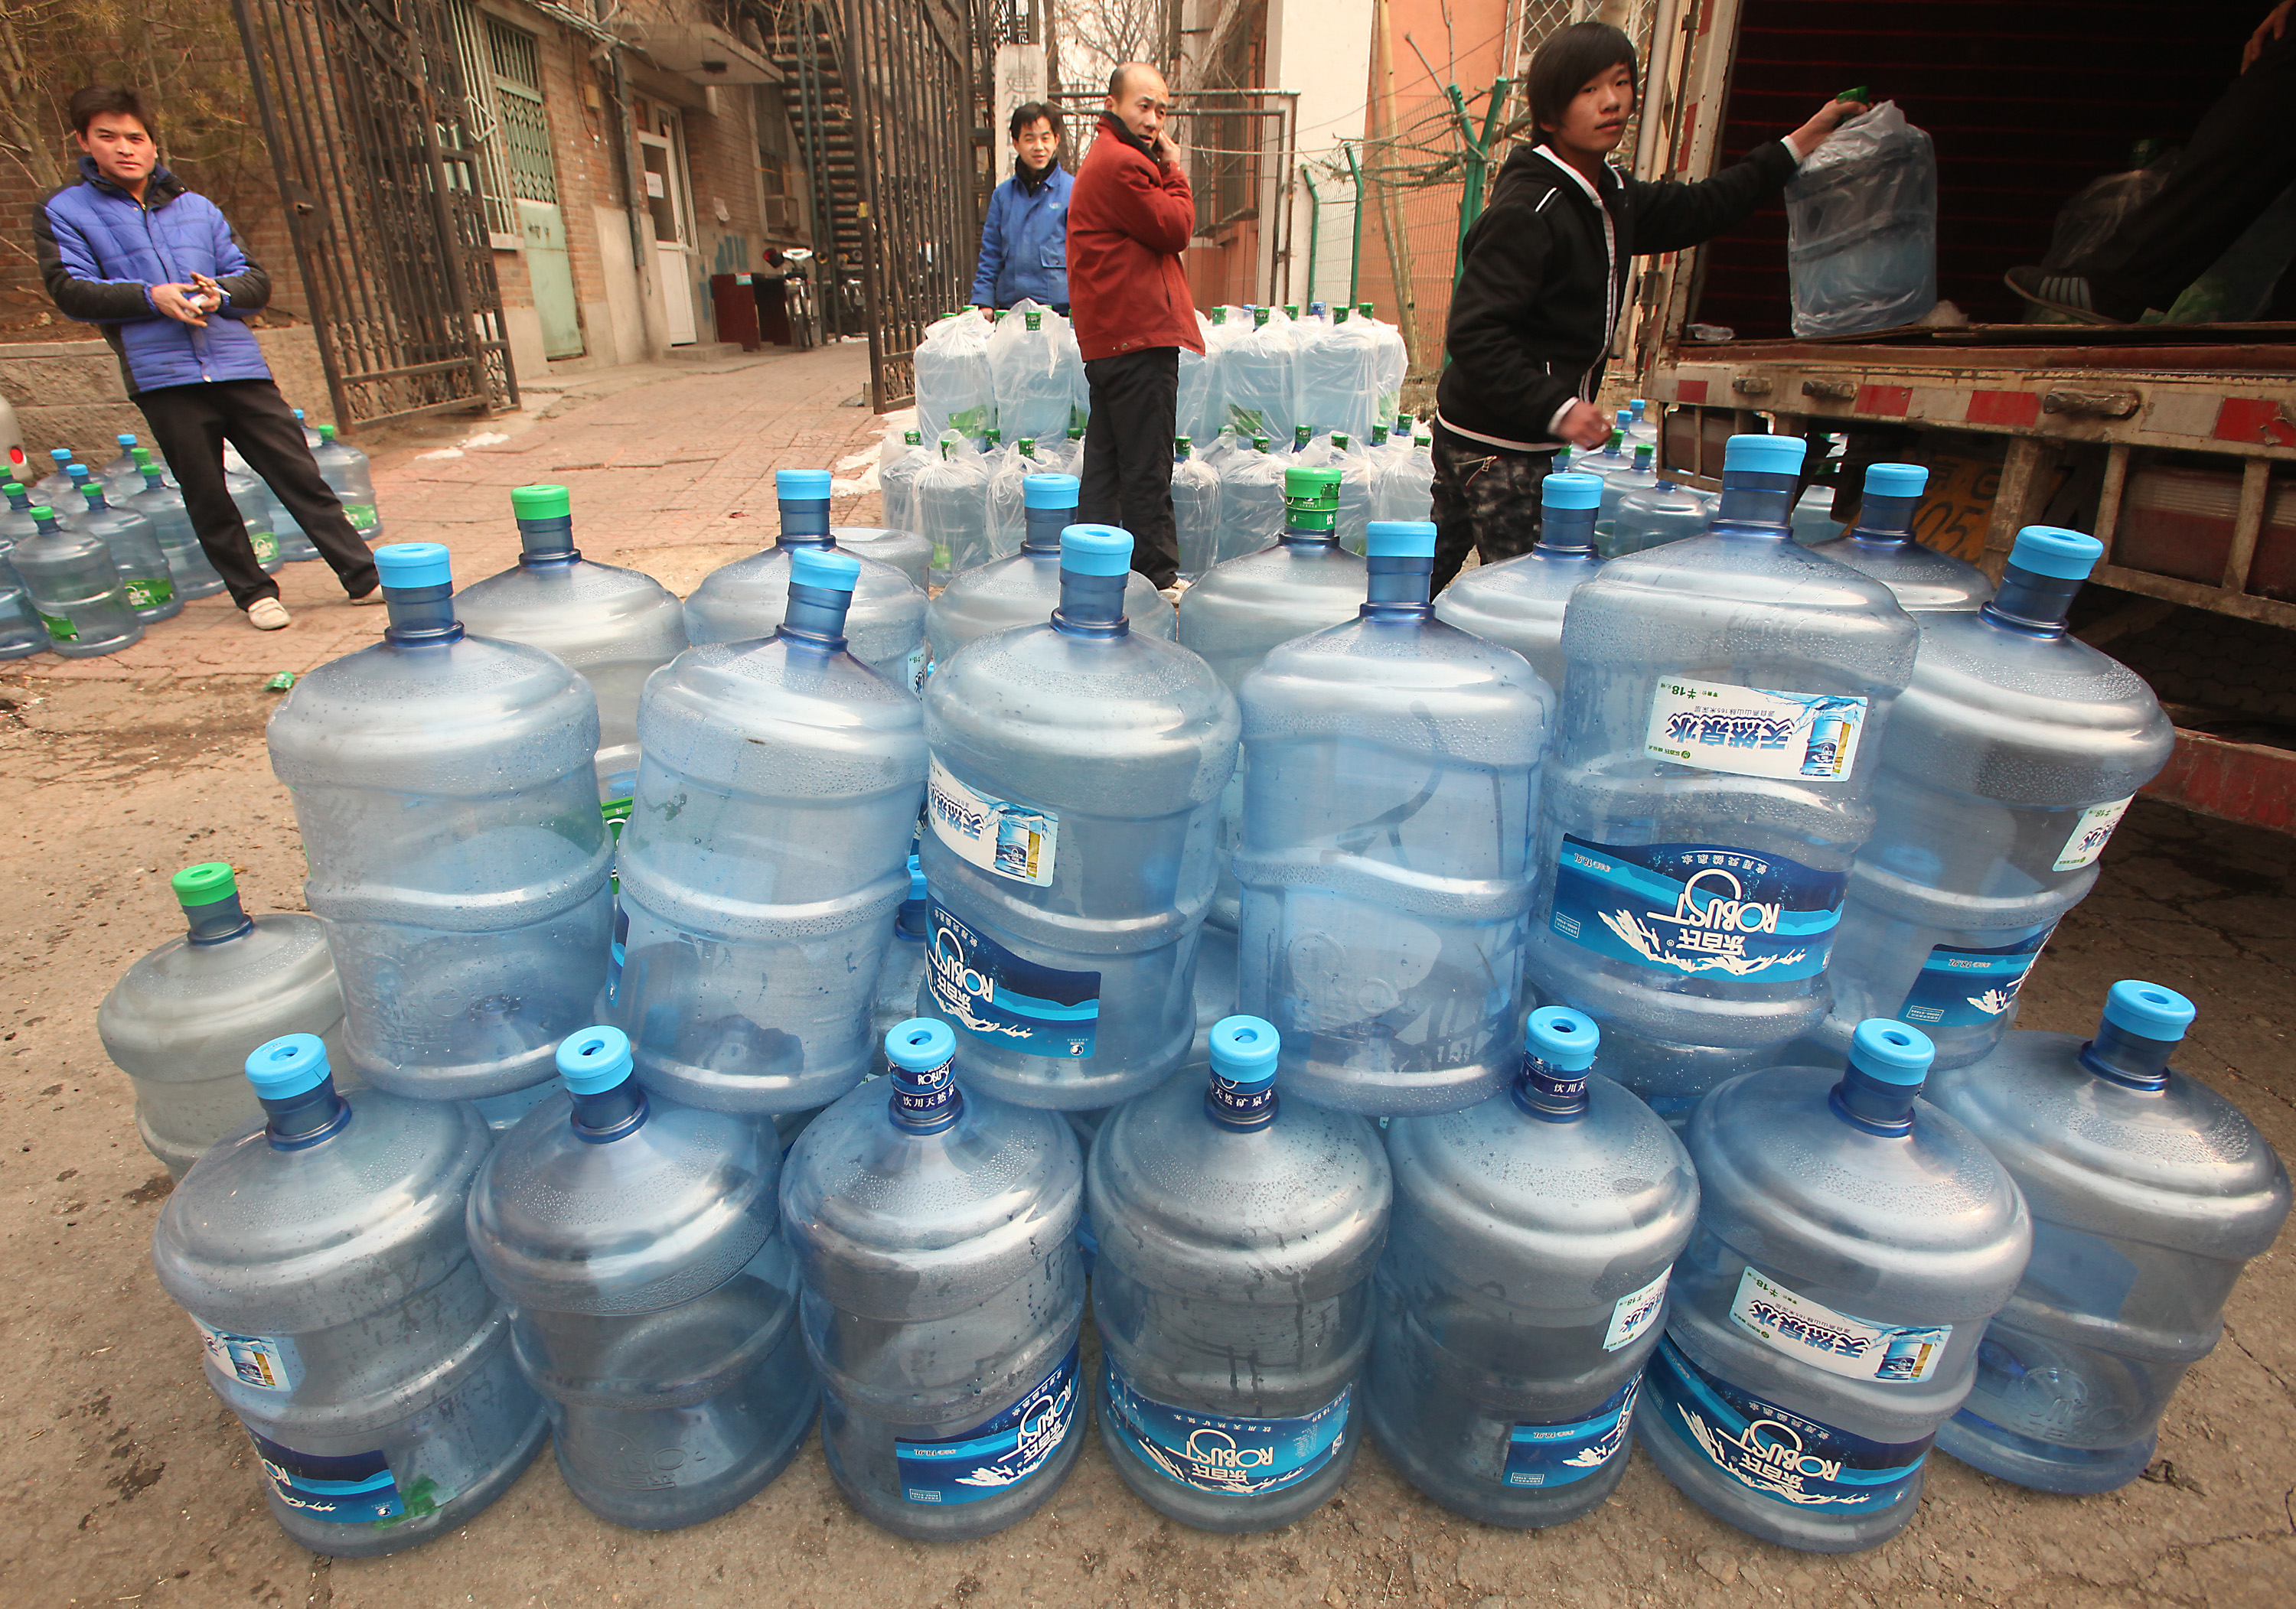 chinese-workers-deliver-drinking-water-to-housing-estate-beijing-137.jpg